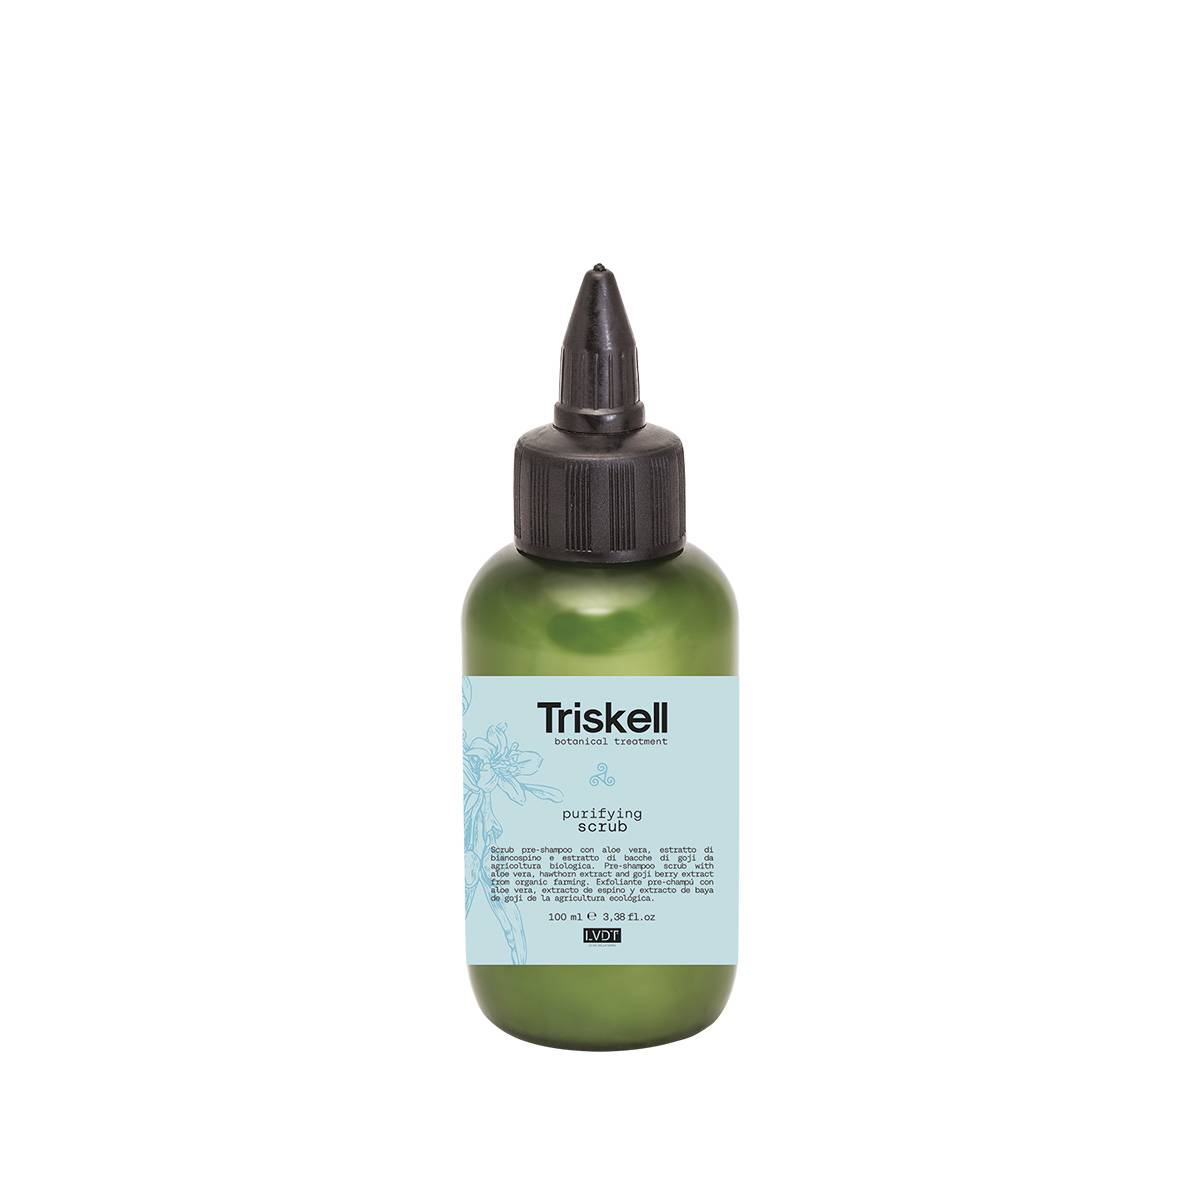 Purifyng Scrub 100ml New Triskell Nuova Botanical Treatment